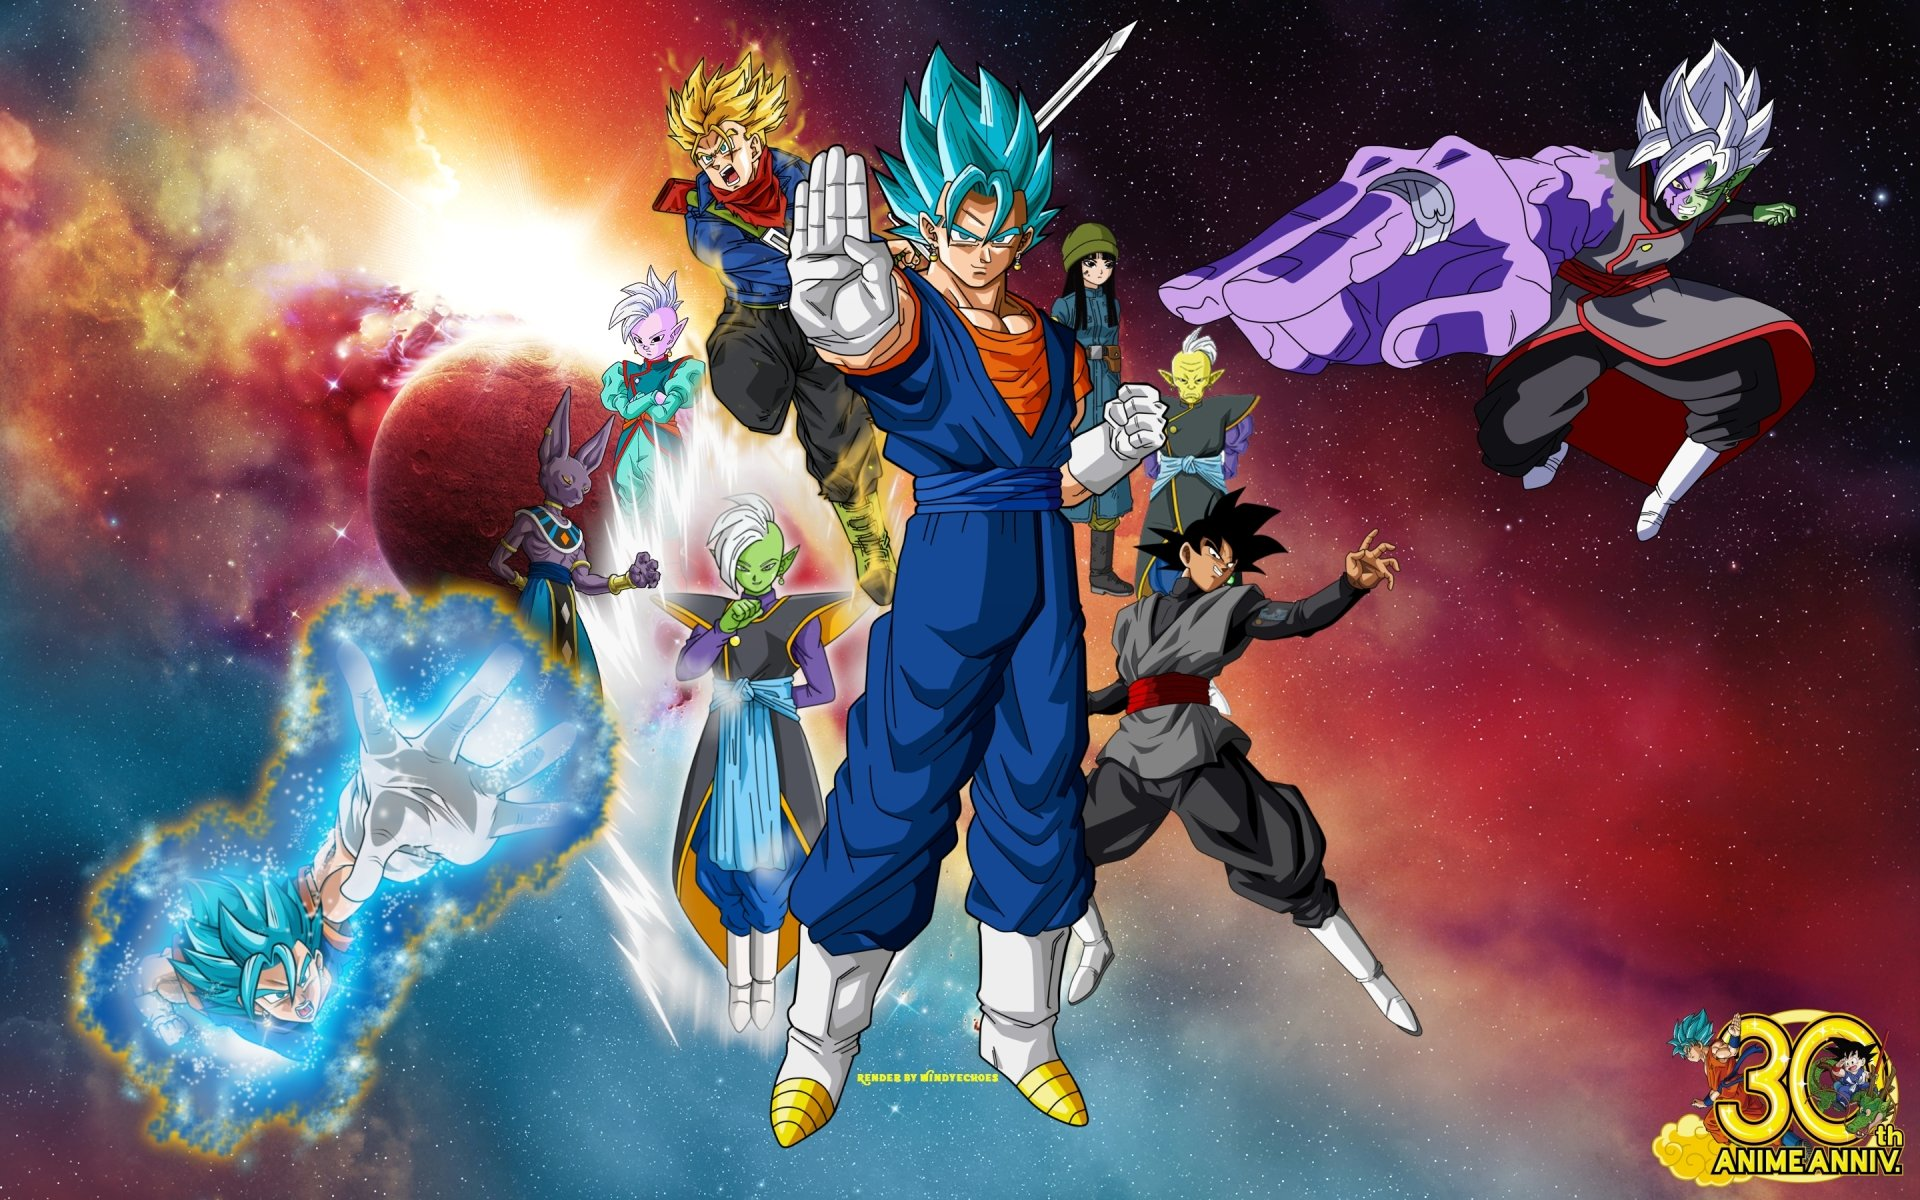 Anime - Dragon Ball Super  Black Goku Black (Dragon Ball) Zamasu (Dragon Ball) Gowasu (Dragon Ball) Mai (Dragon Ball) Trunks (Dragon Ball) SSGSS Vegito Vegito (Dragon Ball) Beerus (Dragon Ball) Supreme Kai (Dragon Ball) Wallpaper